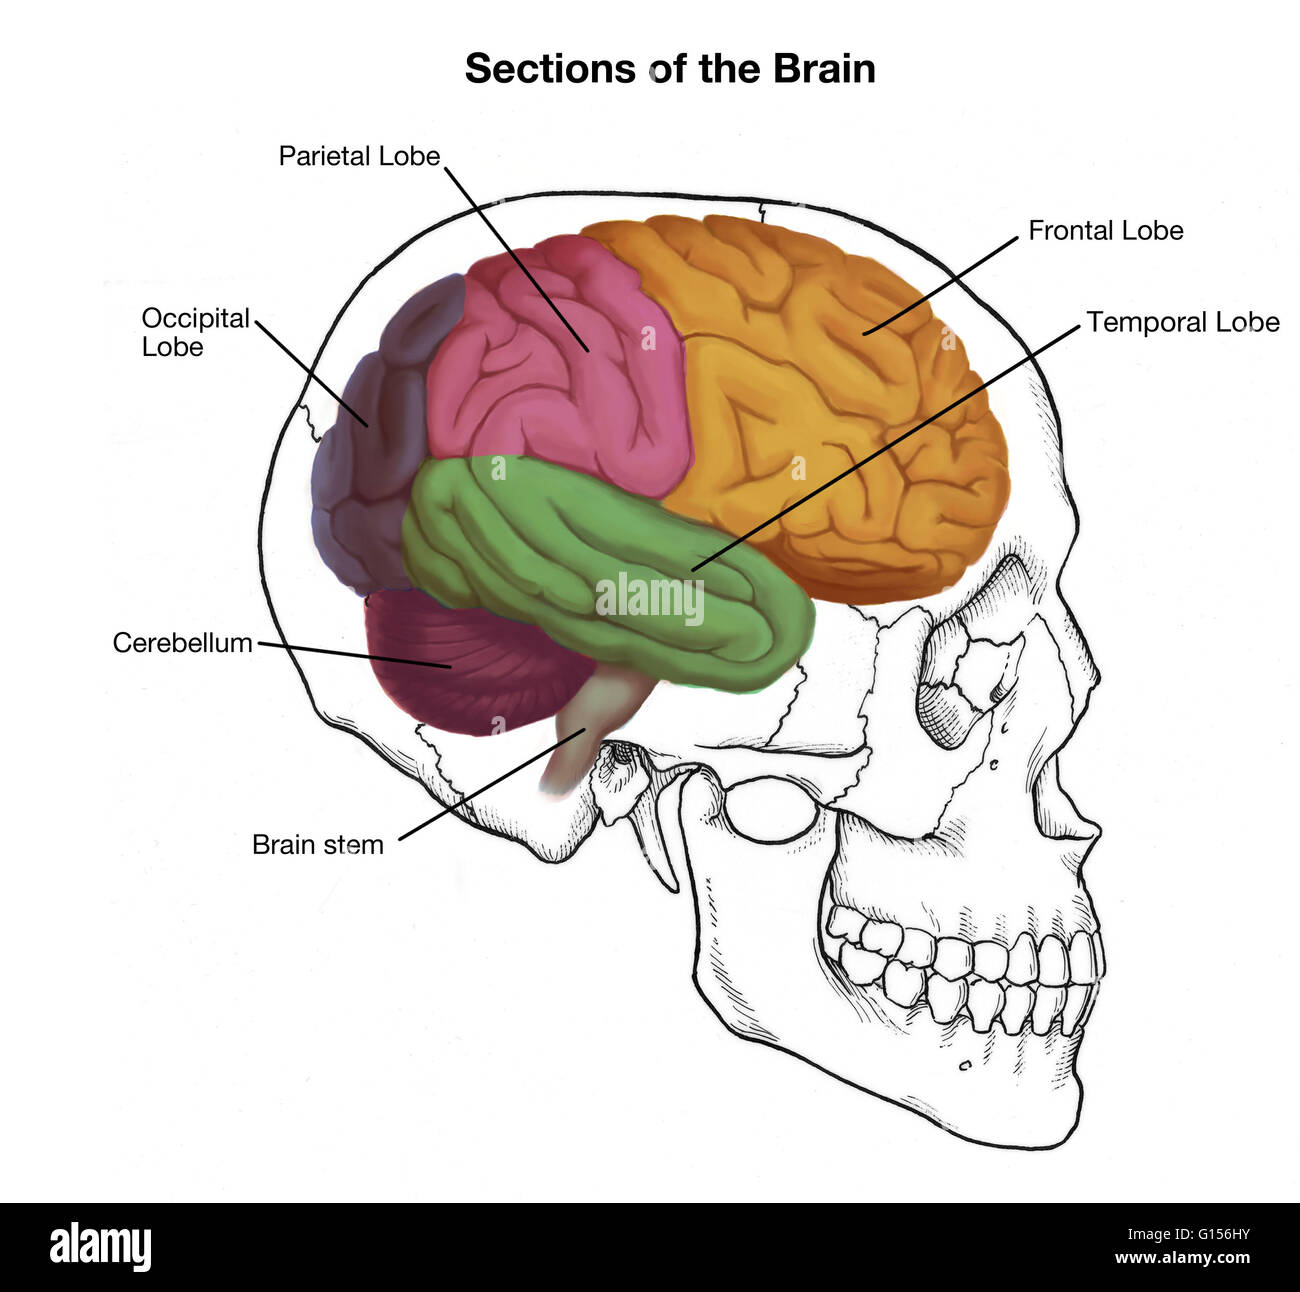 hight resolution of illustration of a human skull and brain with important sections labeled